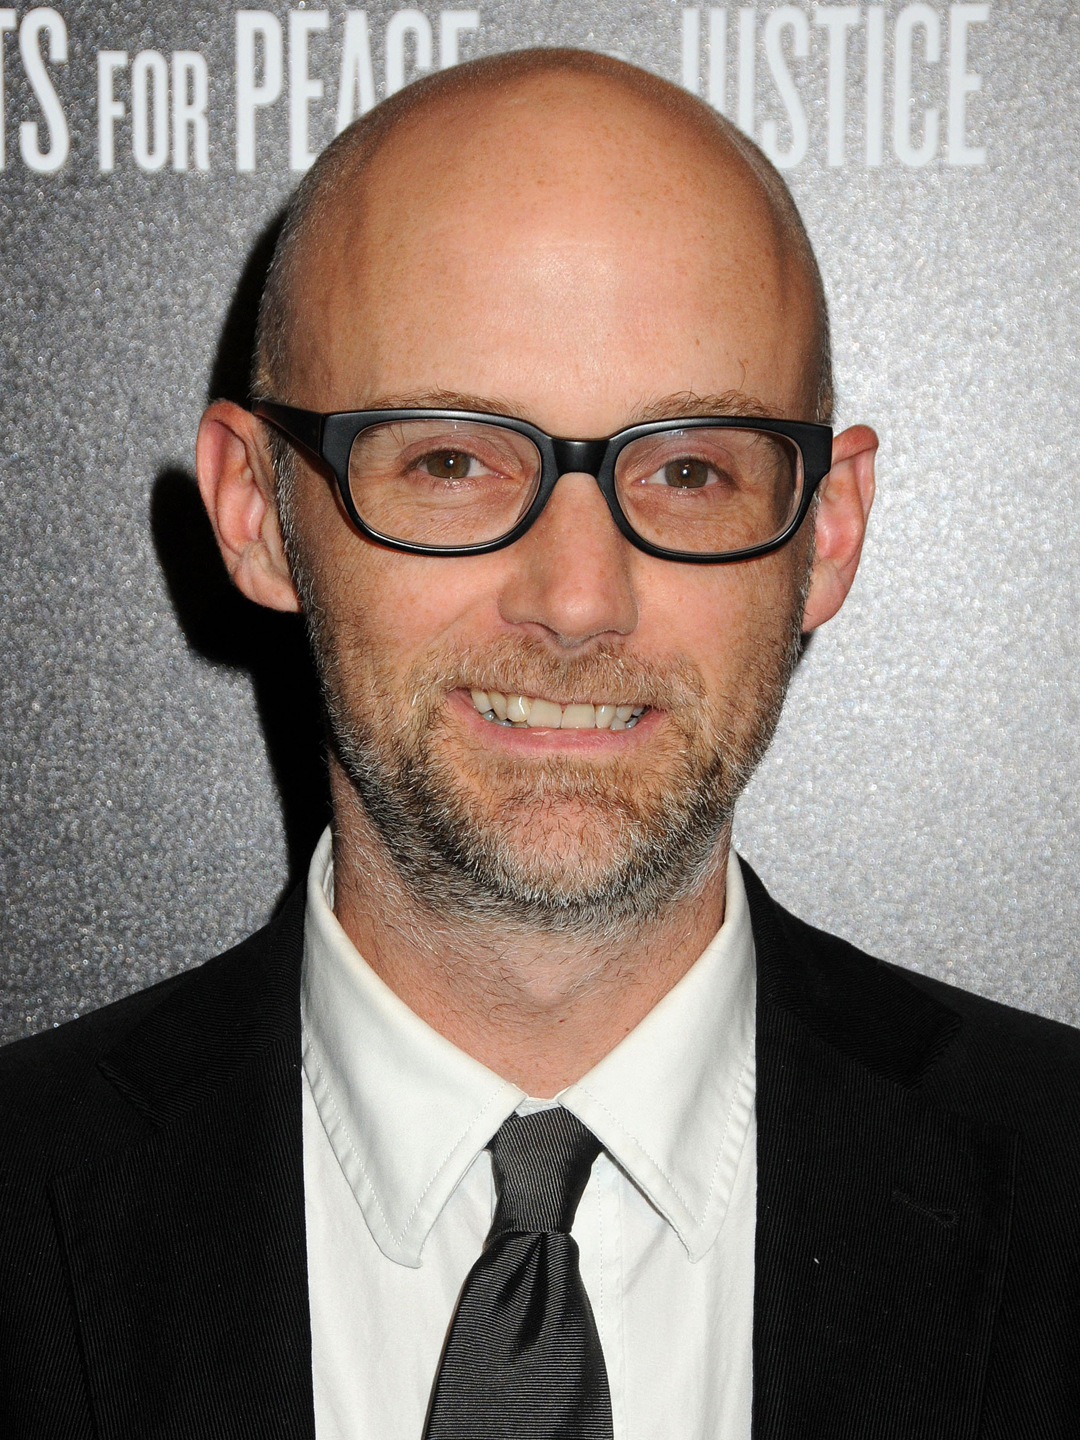 Image result for DJ Moby